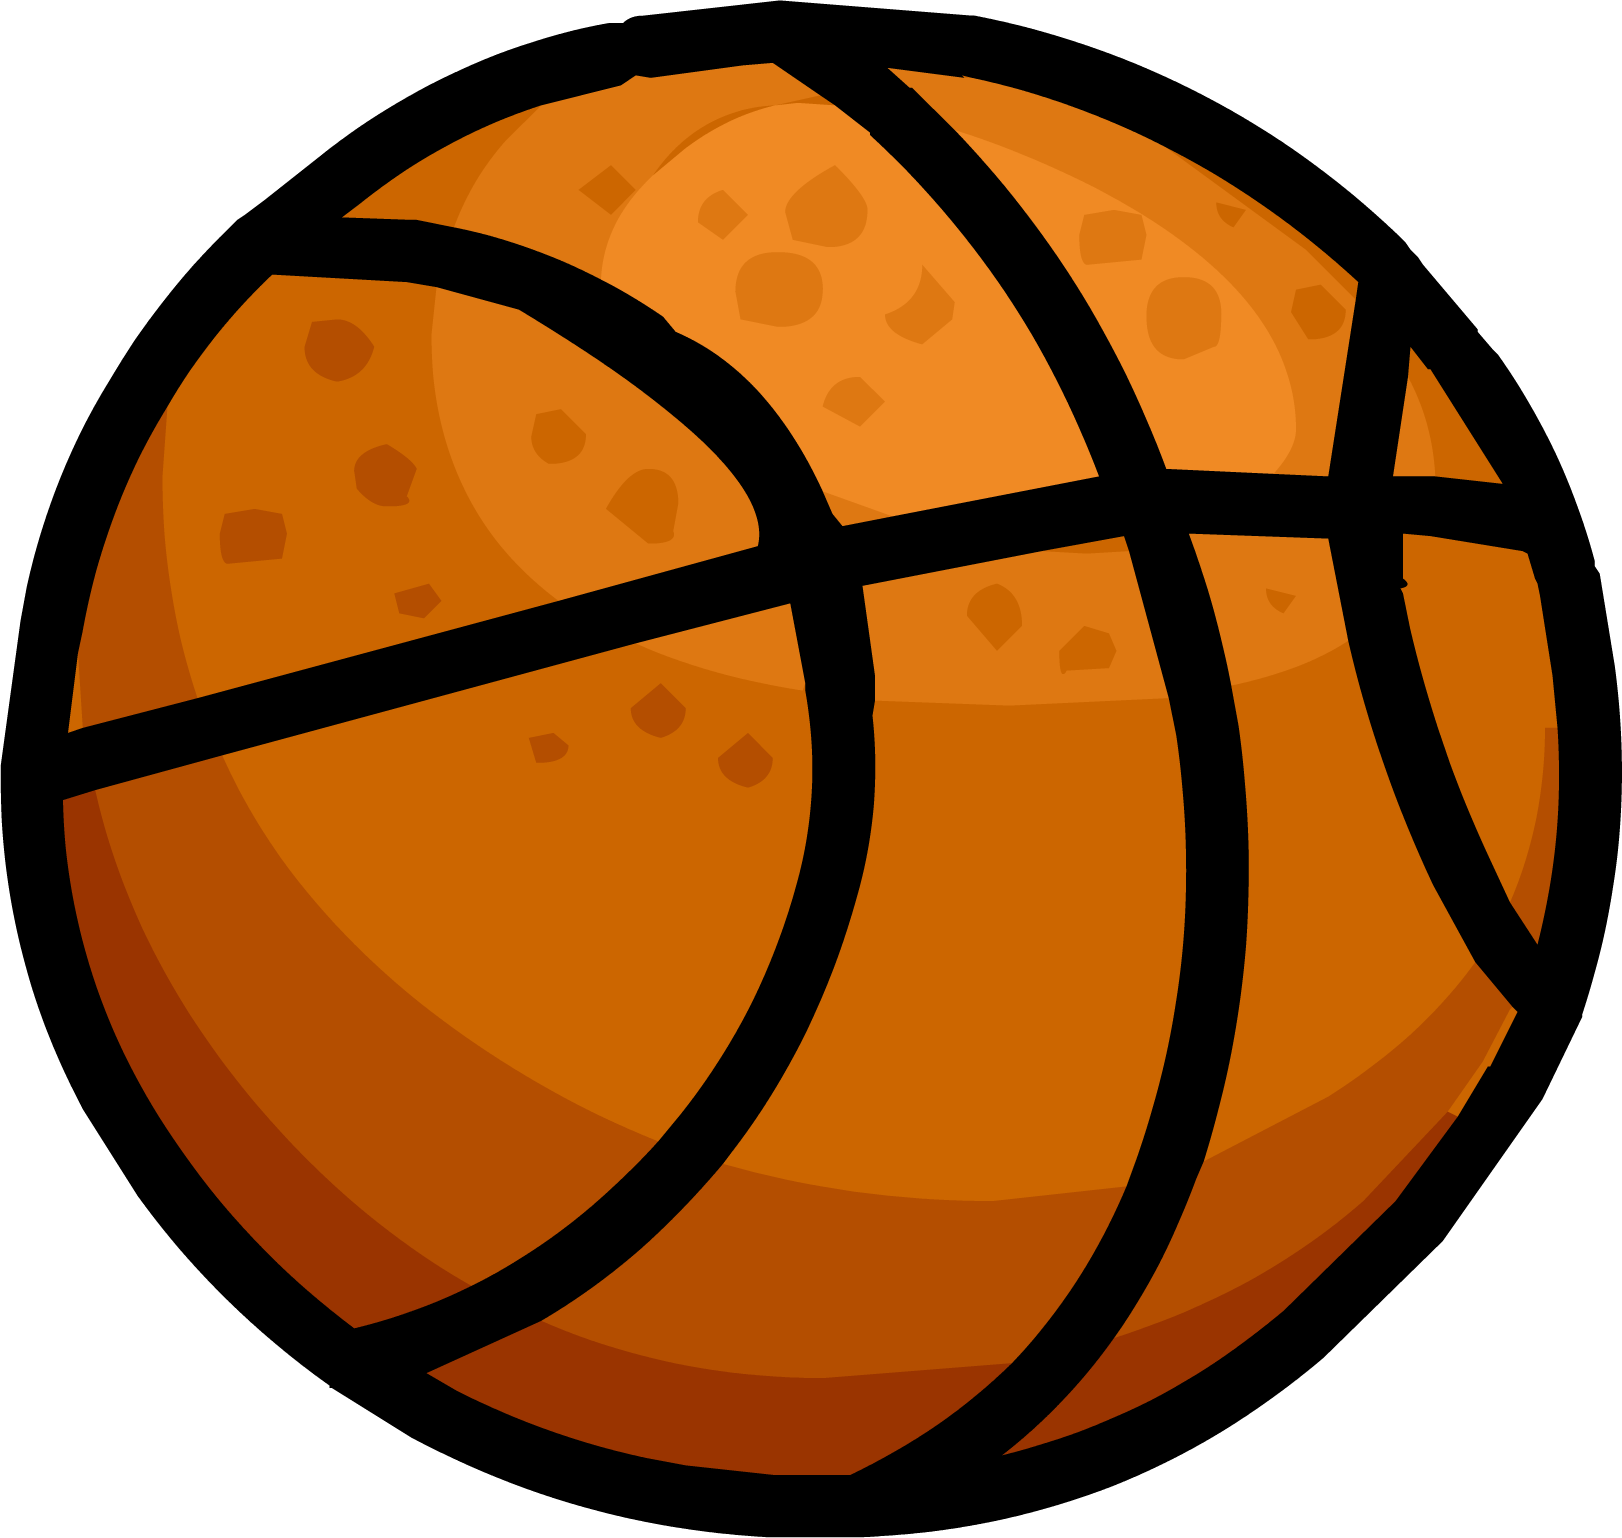 Club penguin wiki fandom. Purple clipart basketball